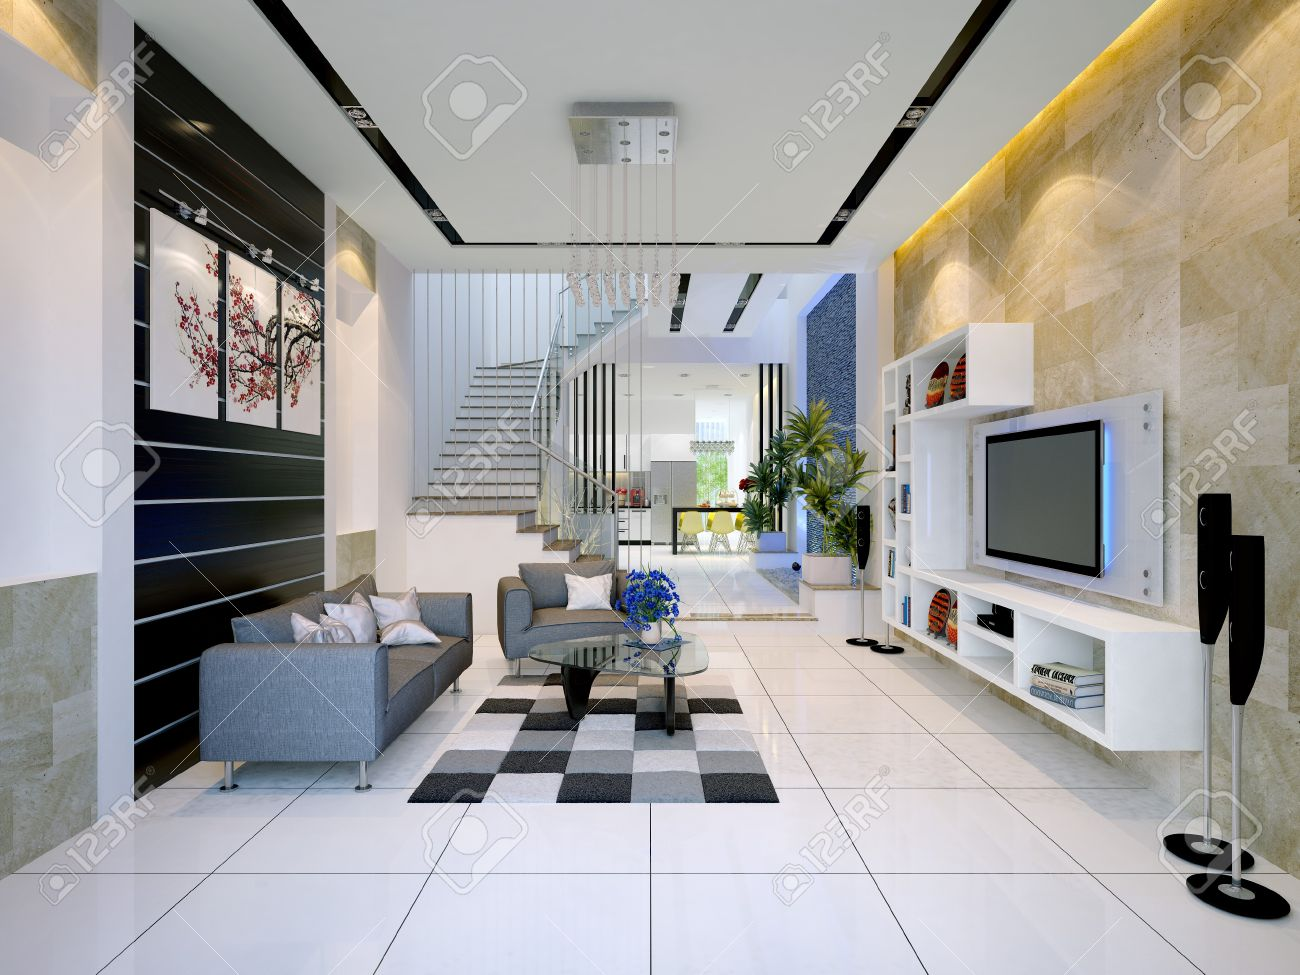 Interieur Maison Modern : Interior of a modern house with living room and dining stock photo